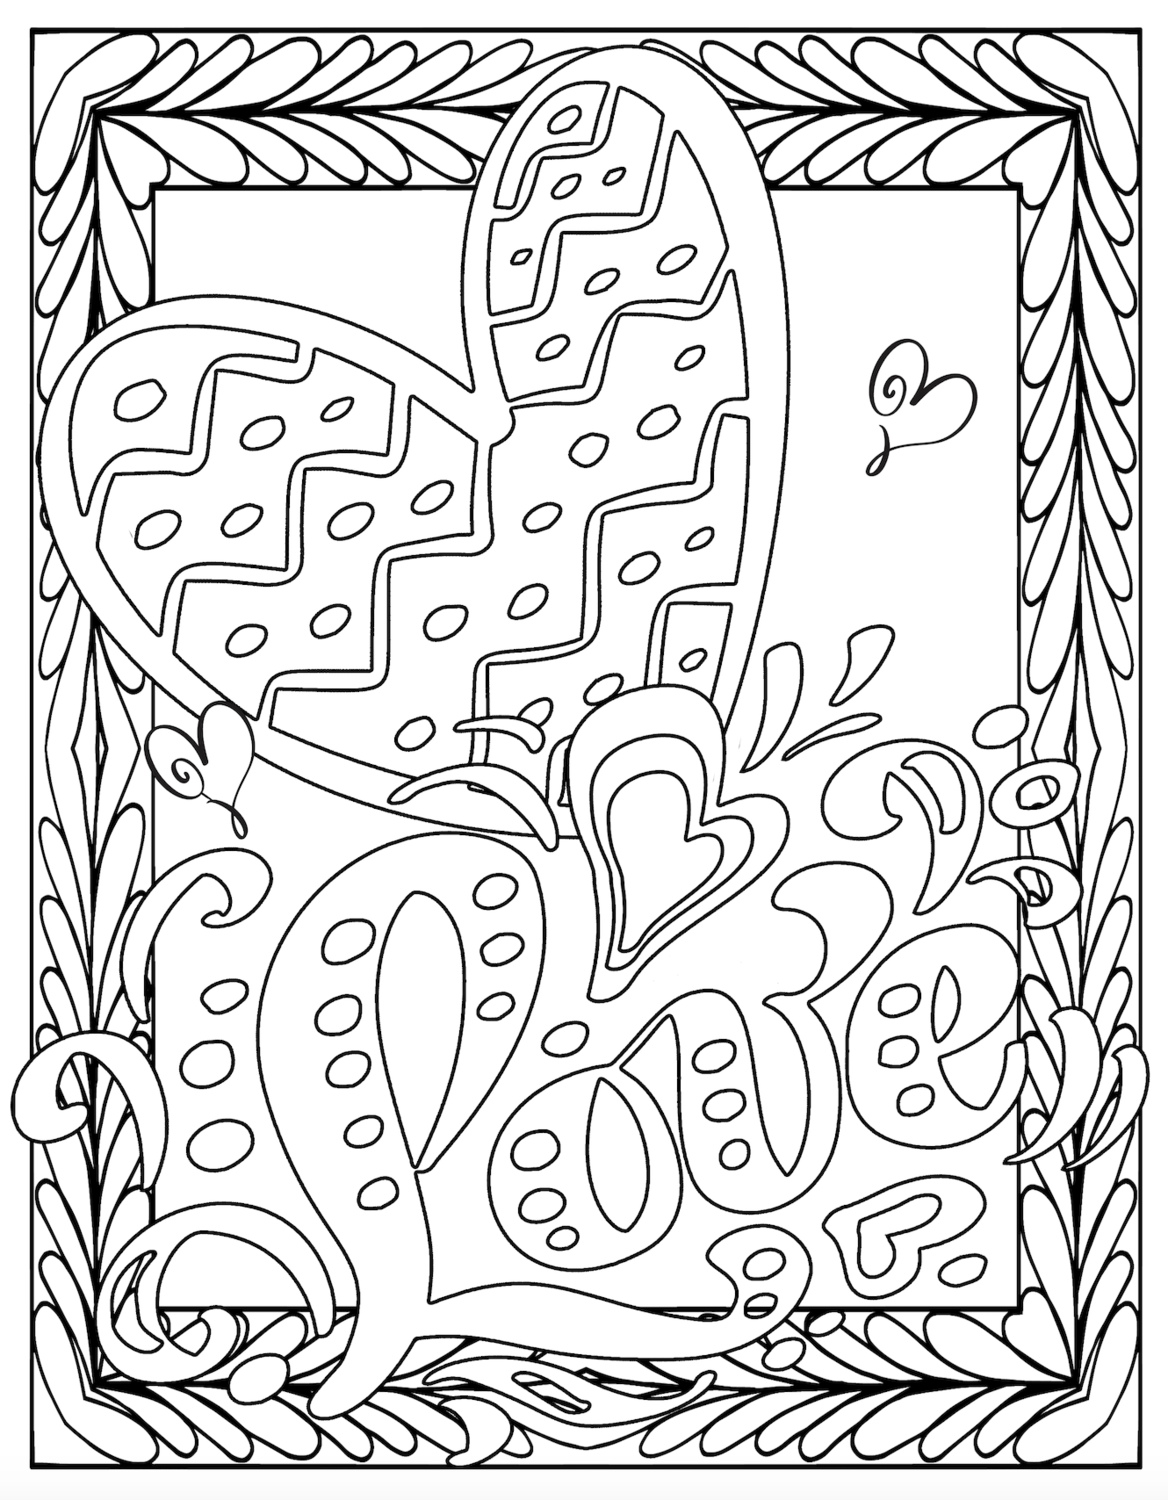 valentines coloring pages printable valentine39s free printable love coloring pages pretty valentines pages printable coloring